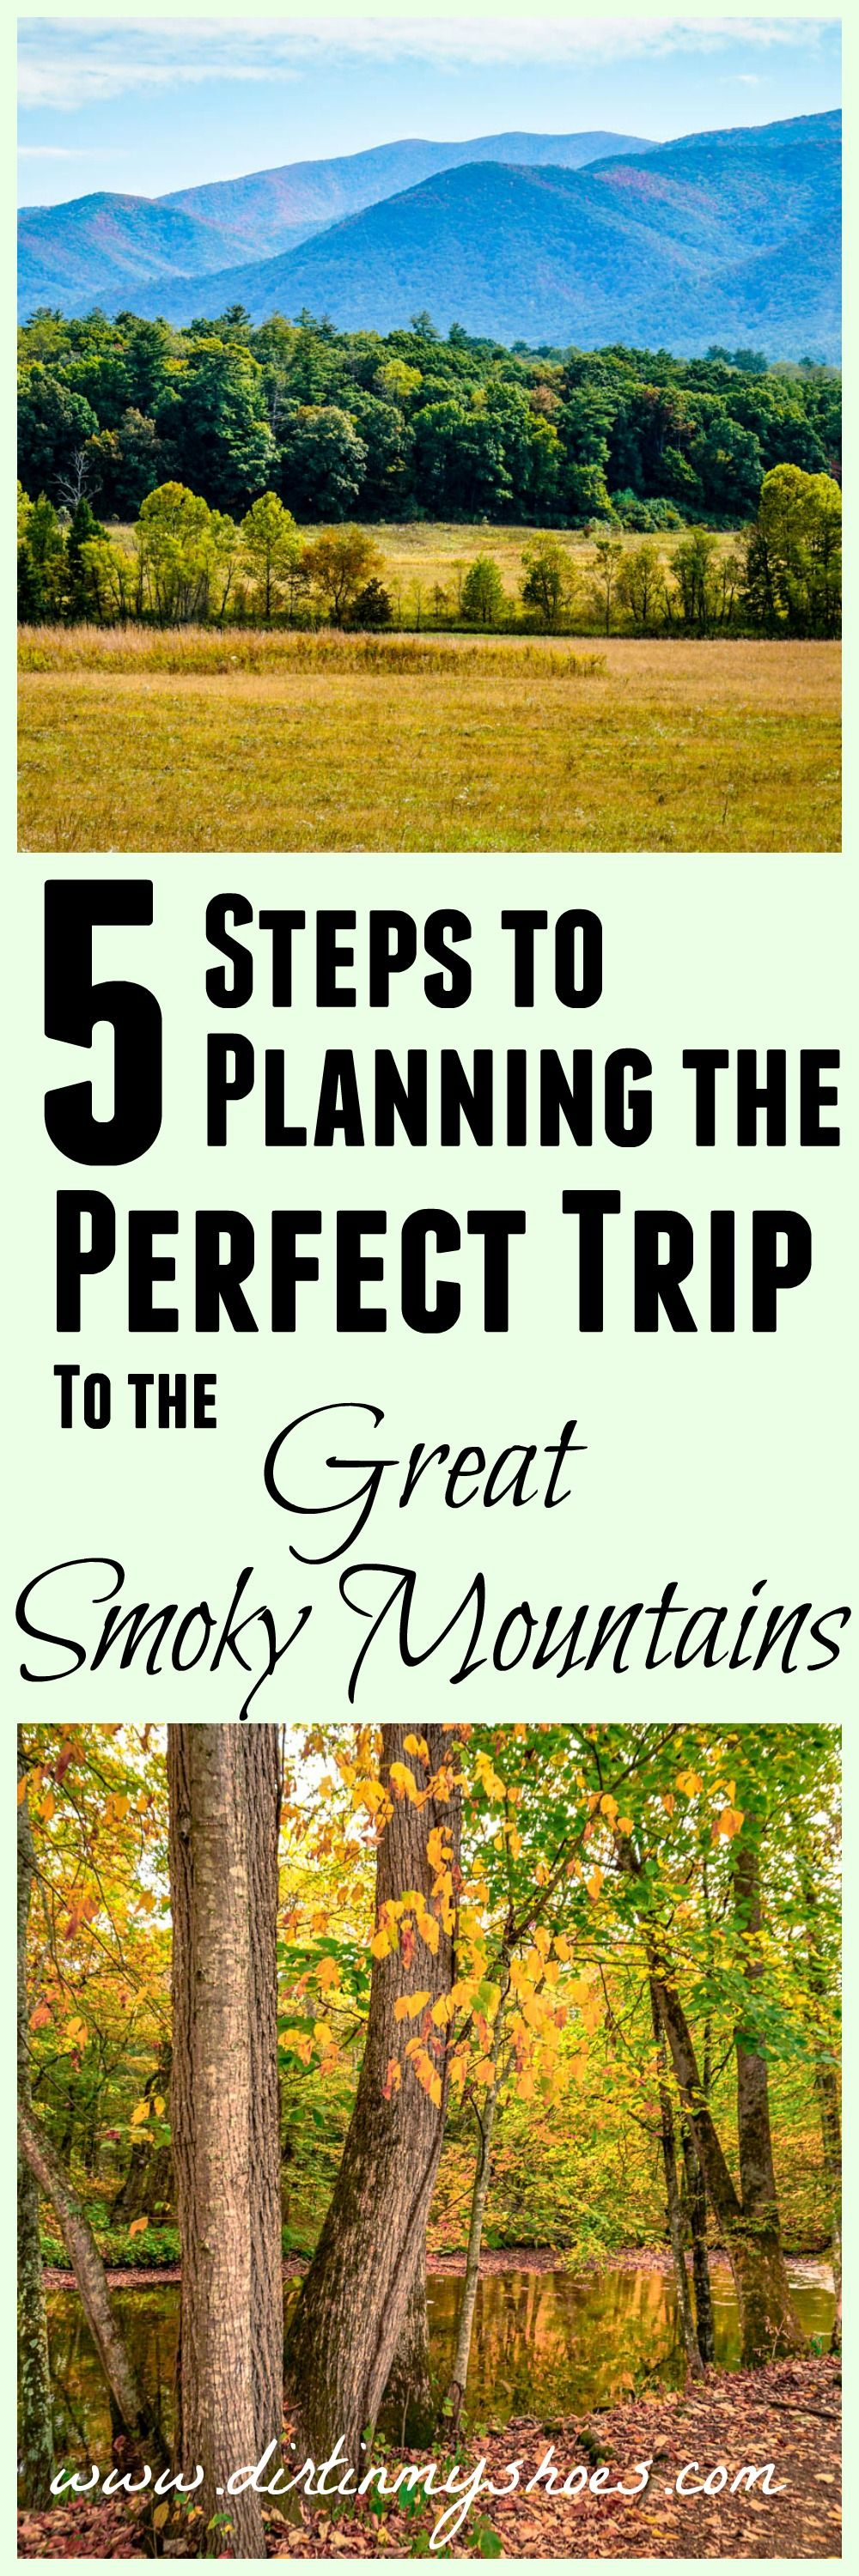 Learn everything you need to know to plan the perfect trip